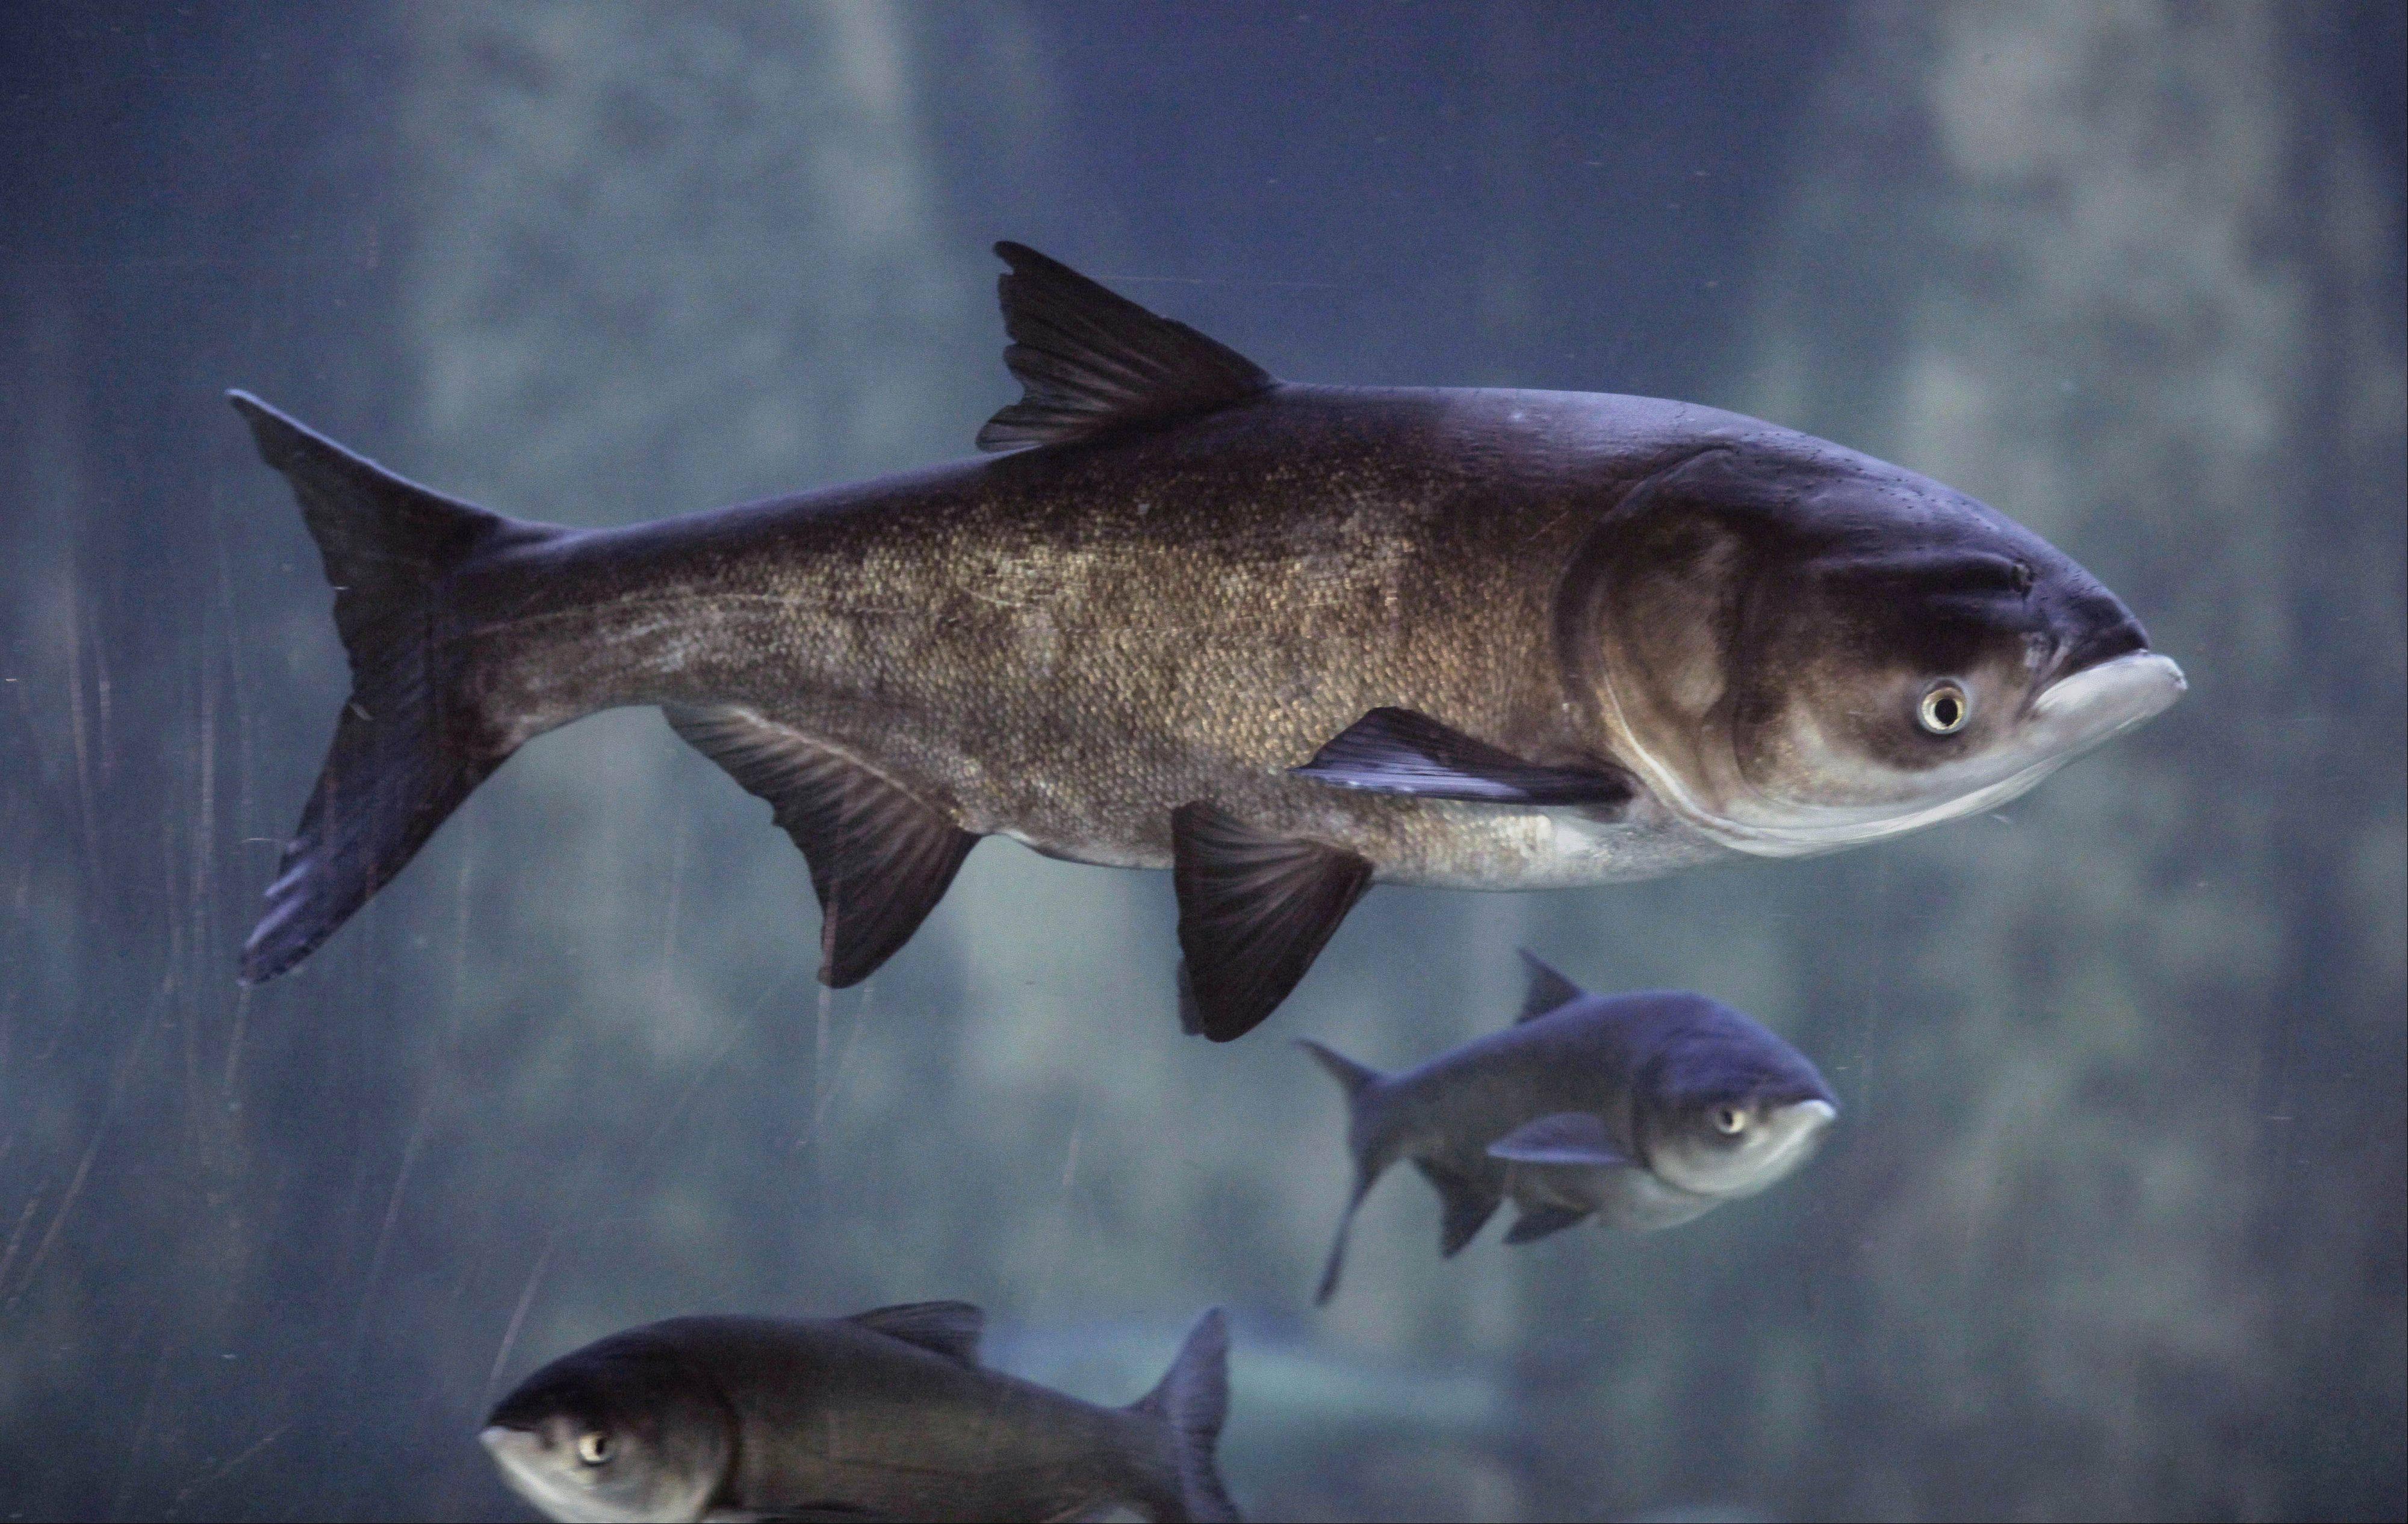 Asian carp are poised to invade the Great Lakes, where scientists say they could out-compete native fish for food.